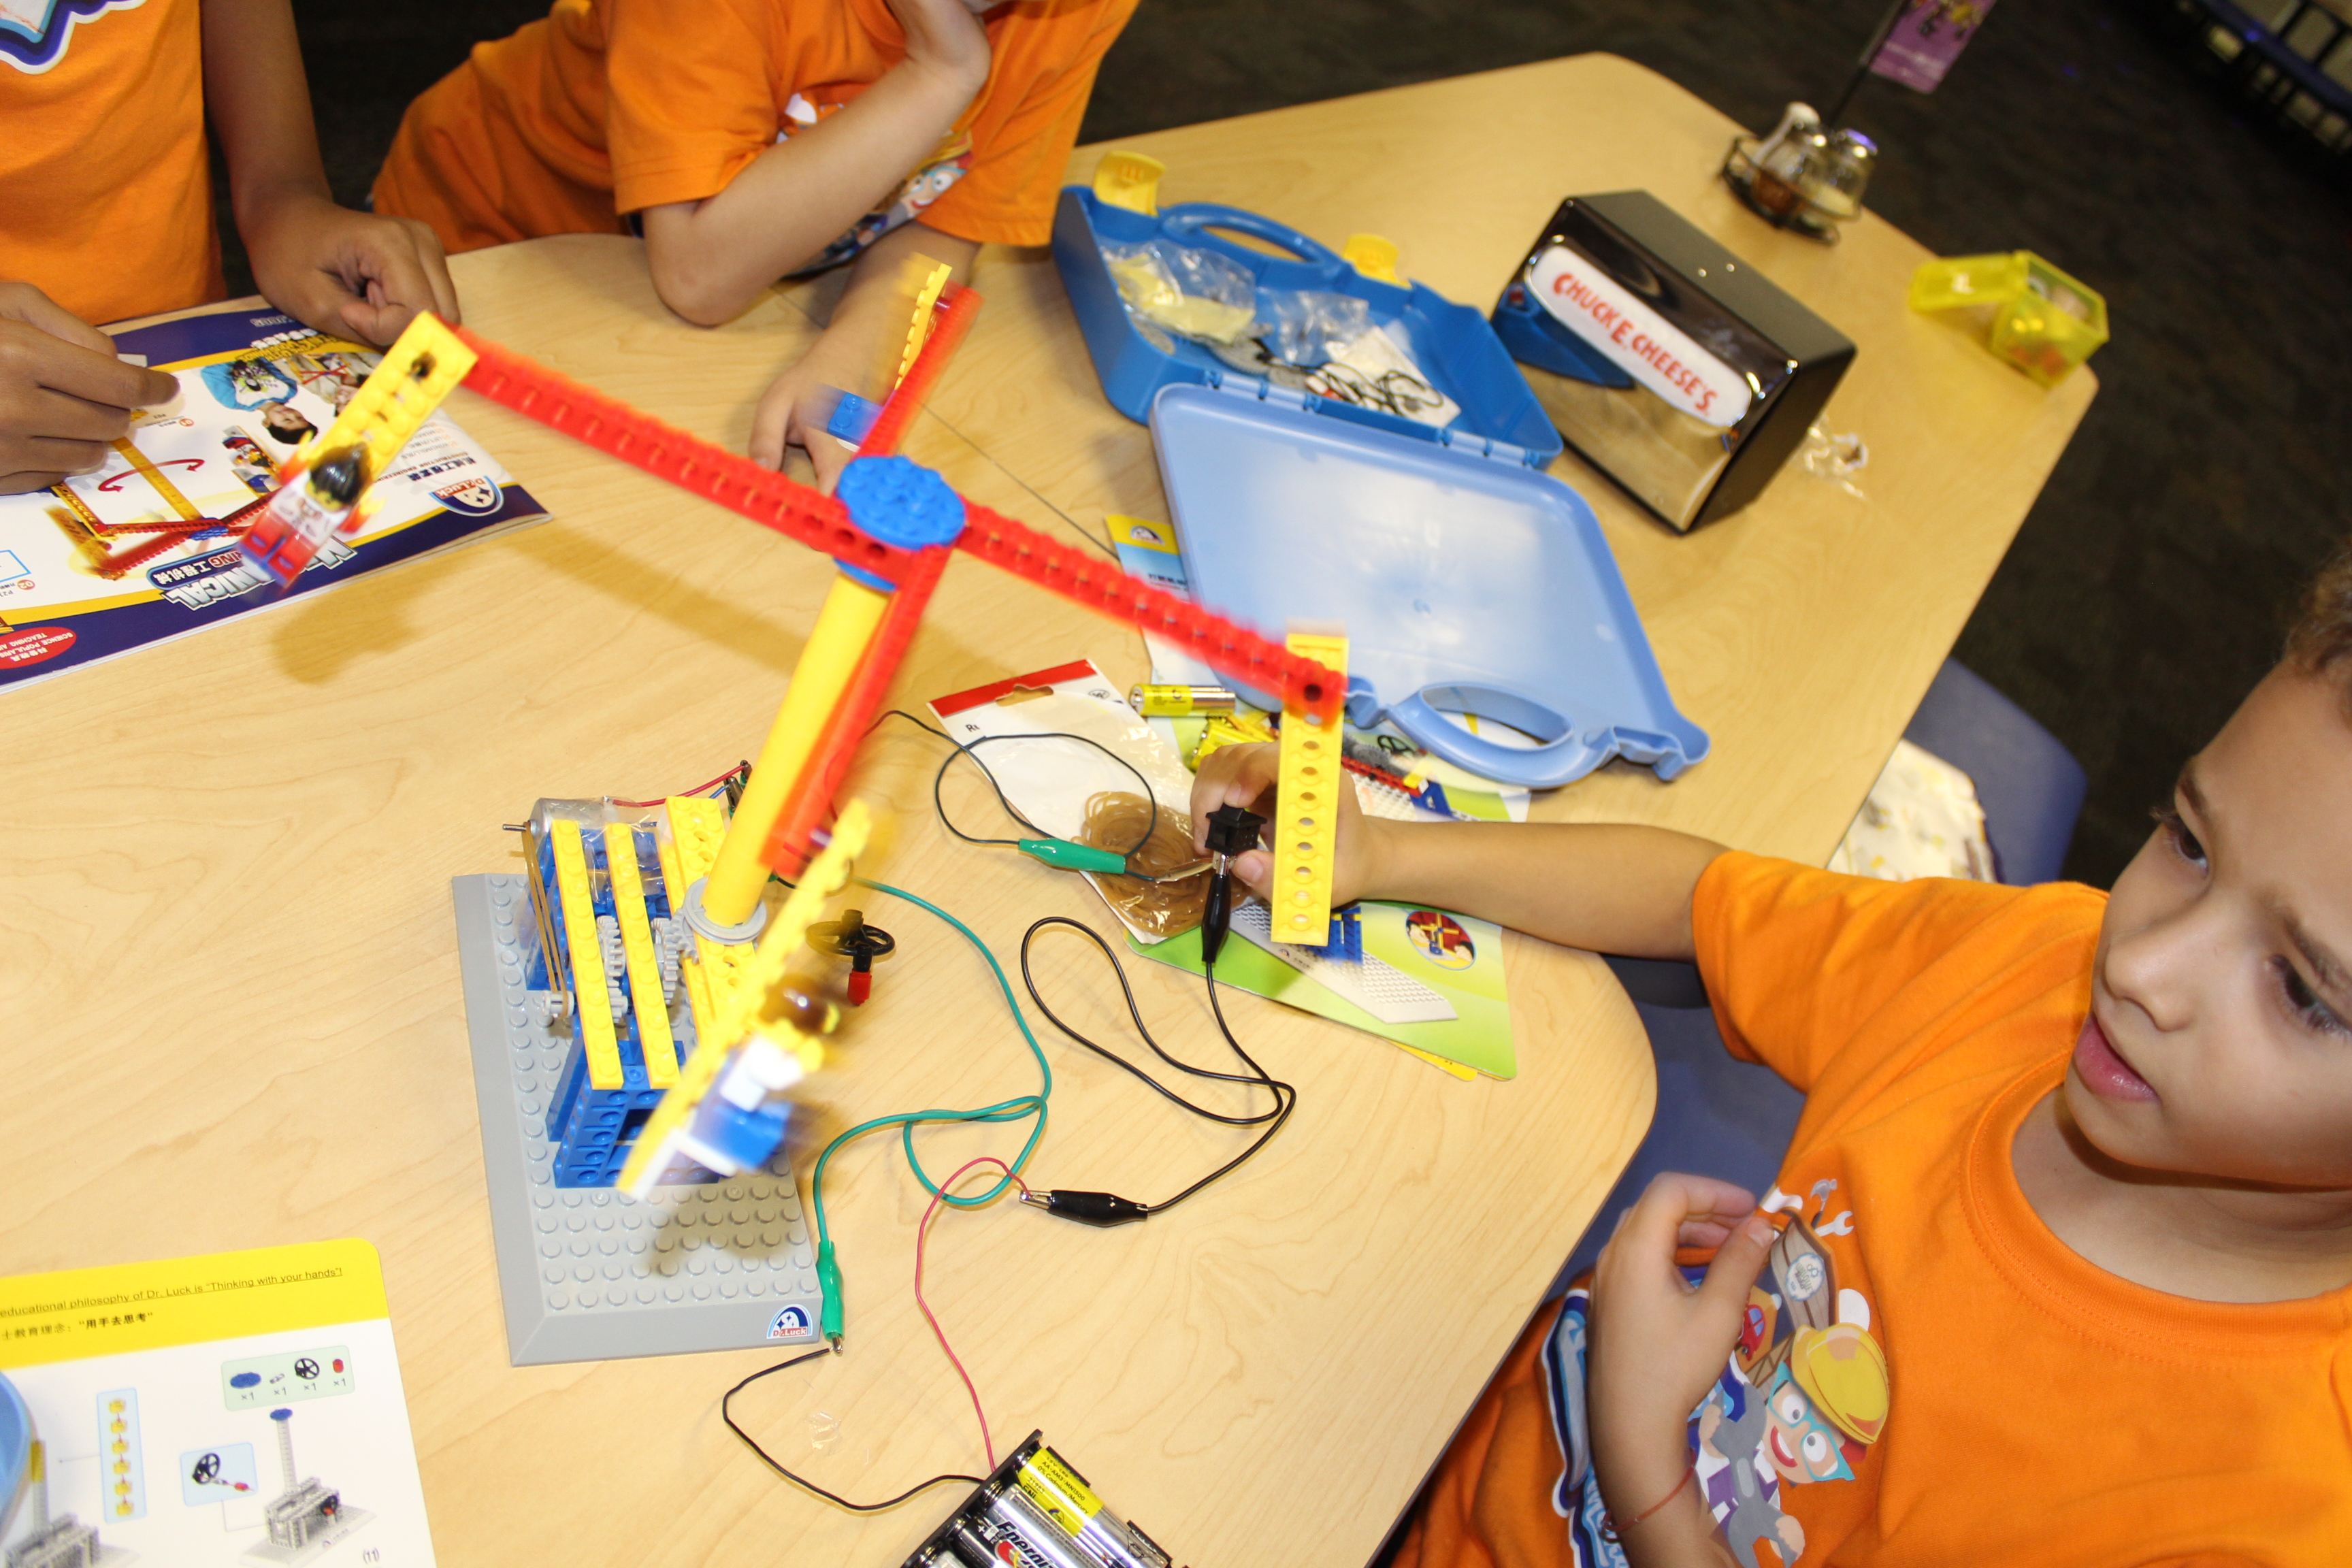 Lego with motors and engines